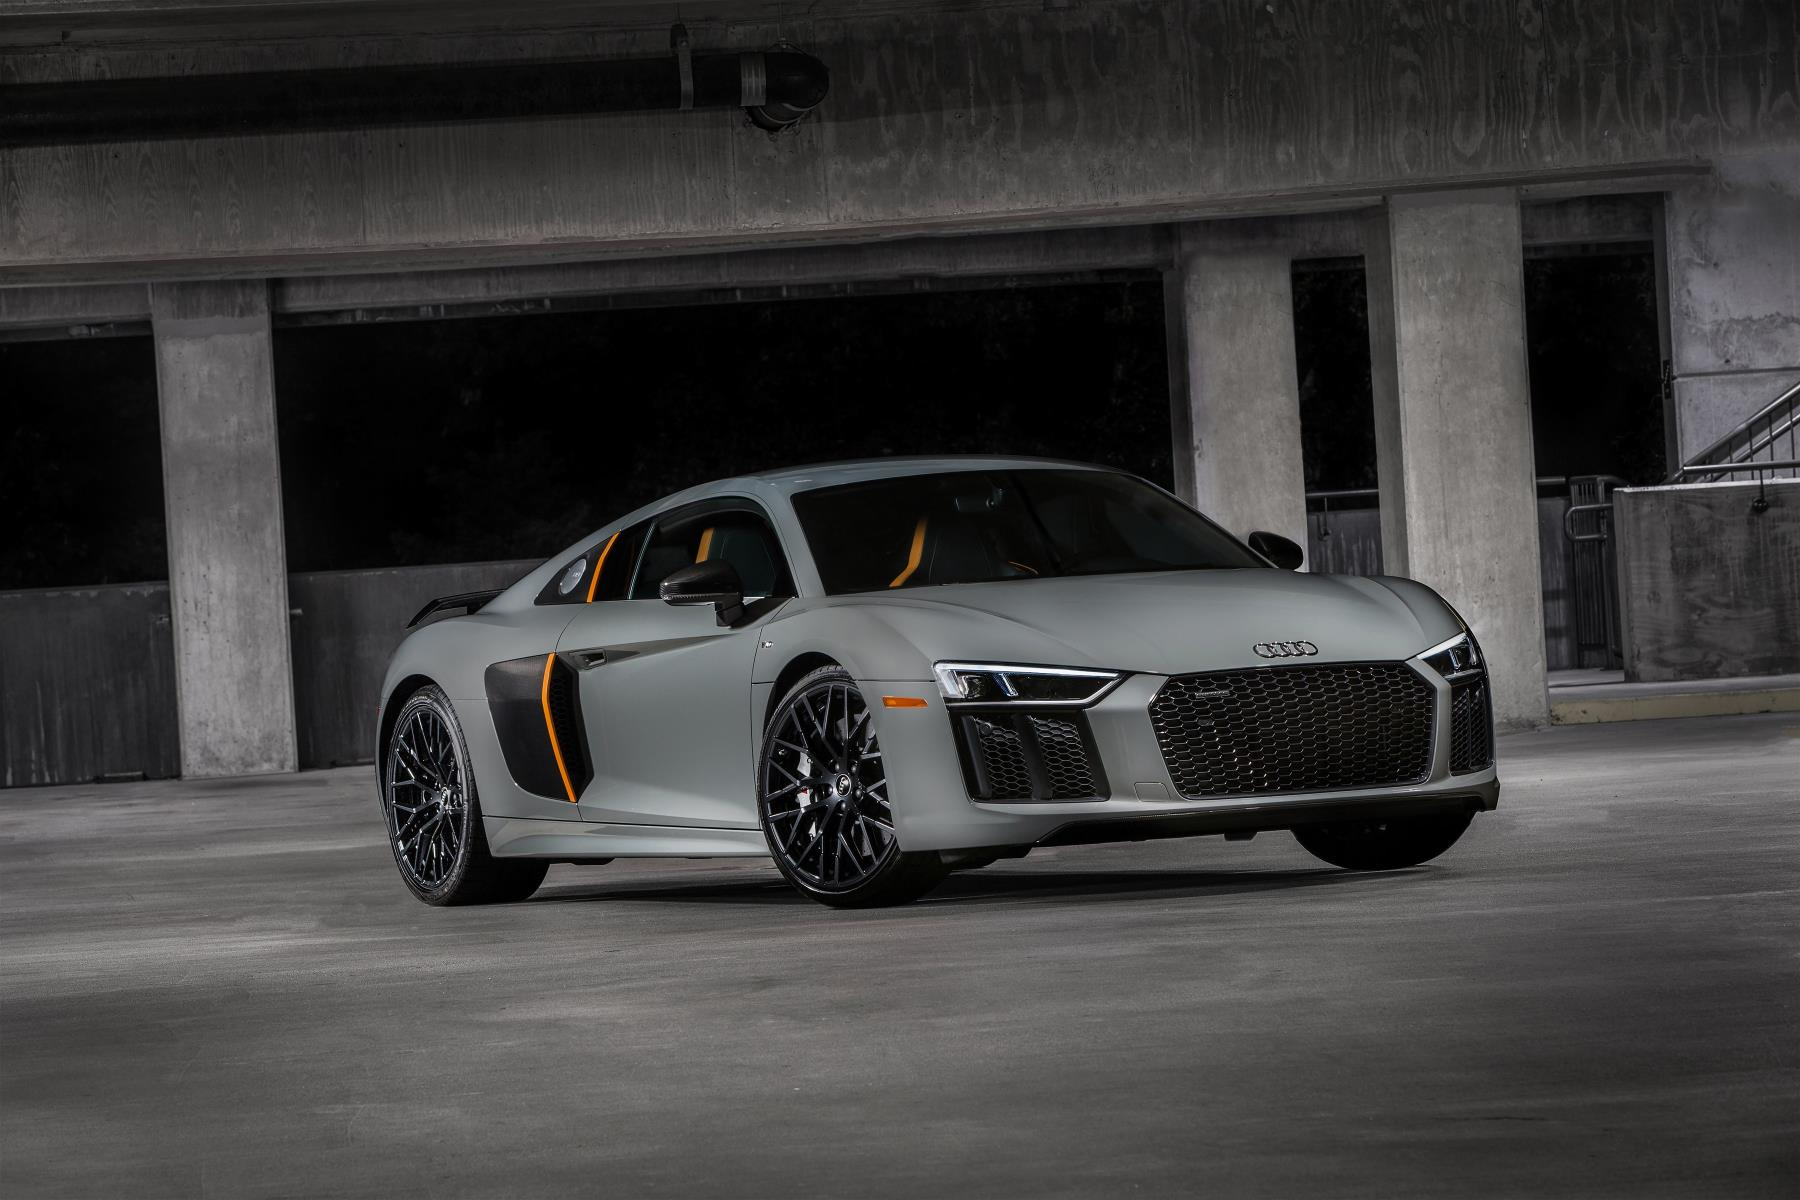 2017 audi r8 v10 plus finally gets laser headlights in the us the particular model that has upgraded beams is called the r8 v10 plus exclusive edition and is still part of the 2017 model year roster publicscrutiny Images